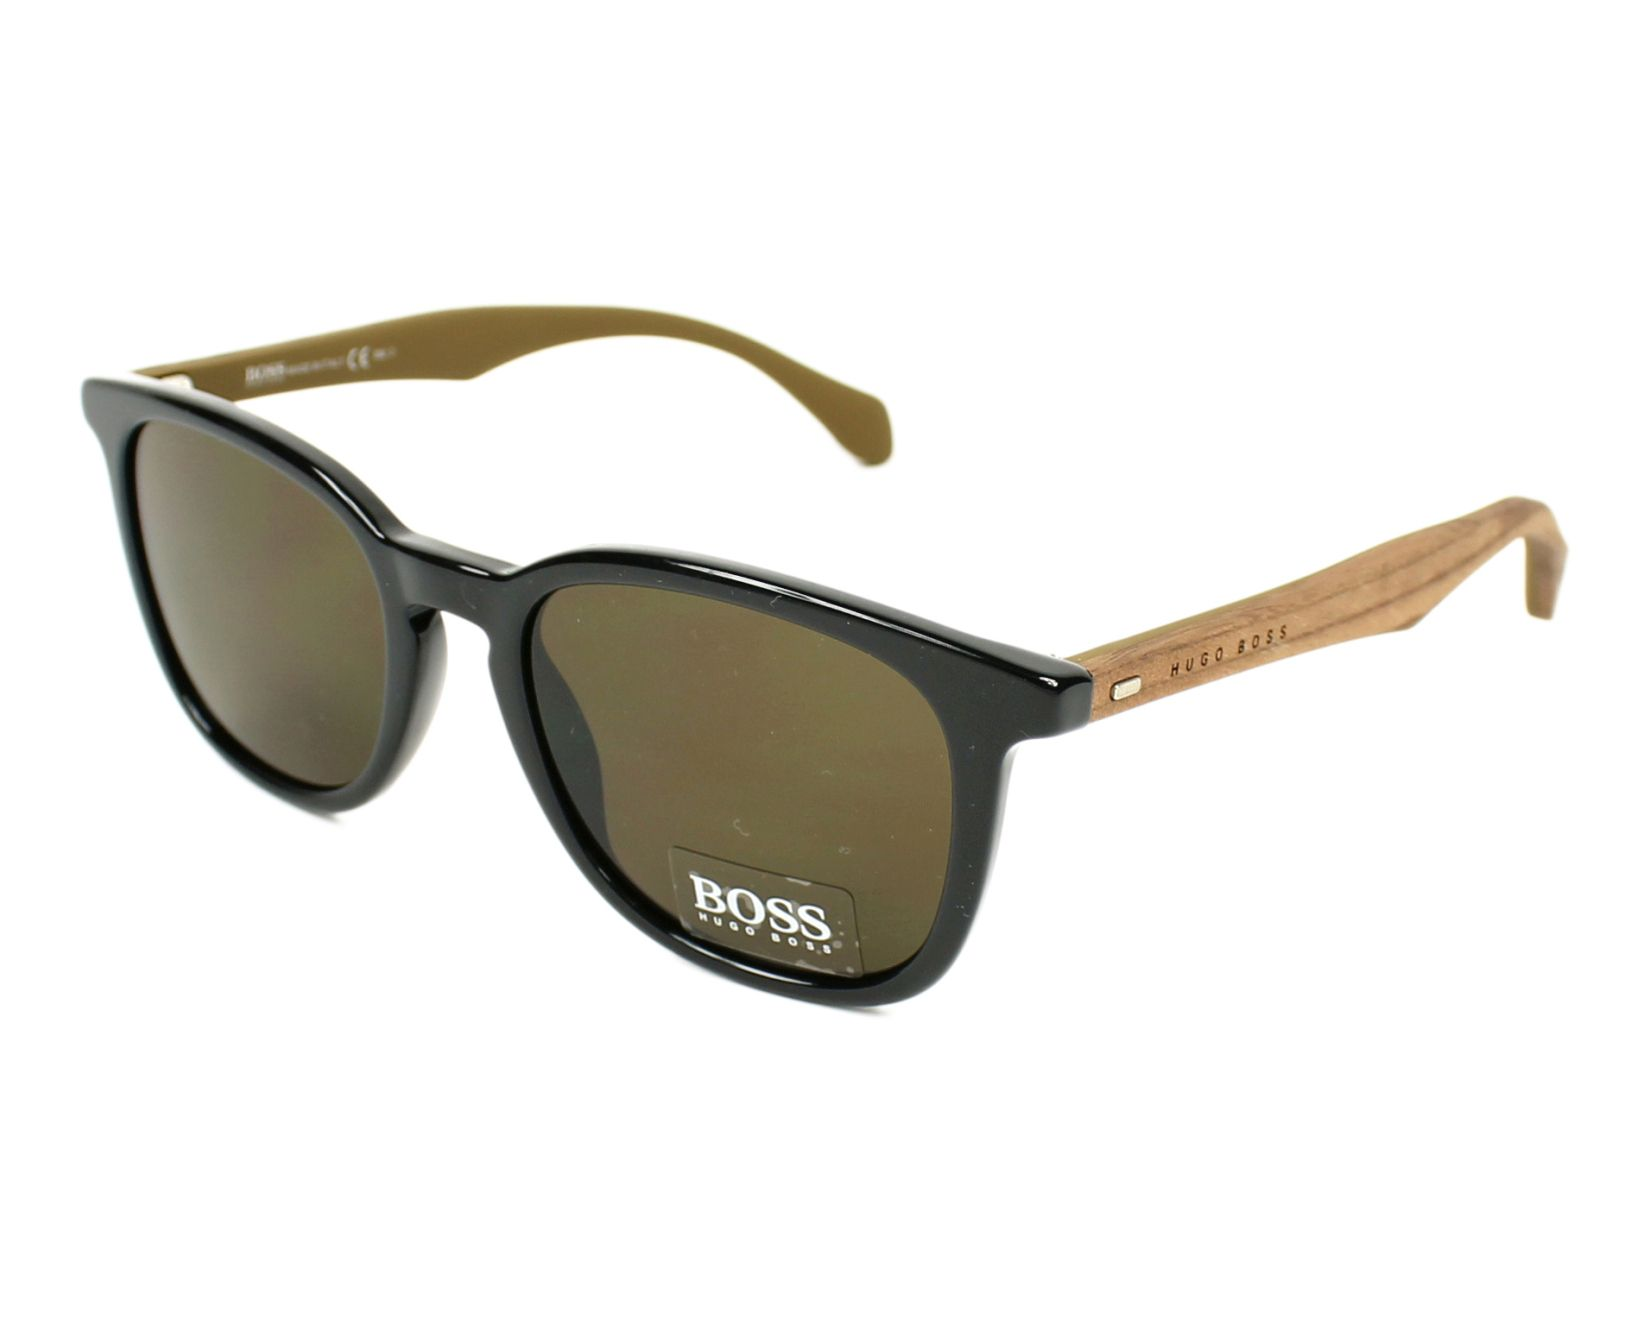 5f1fe348693 Hugo Boss - Buy Hugo Boss sunglasses online at low prices